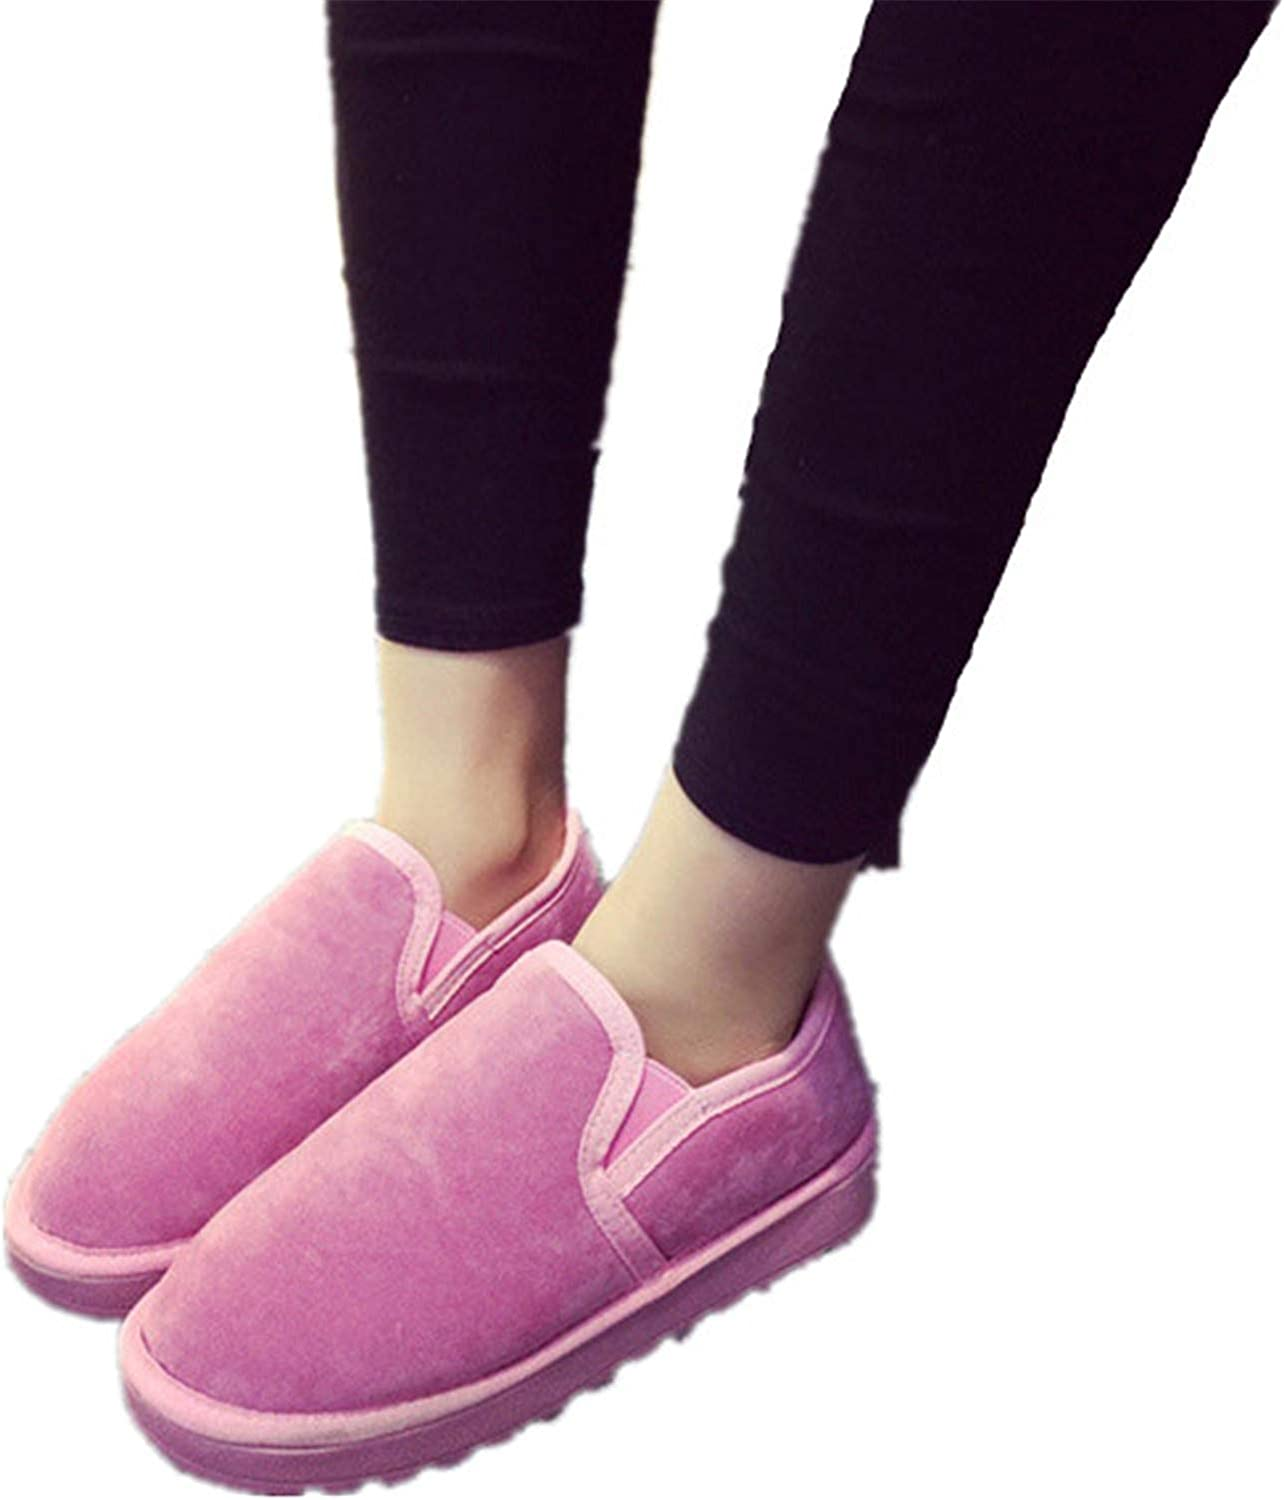 XIAFEIMANTIAN Thick Plush Casual Women Ankle Boots Comfortable Light Lazy Flats Snow Boots